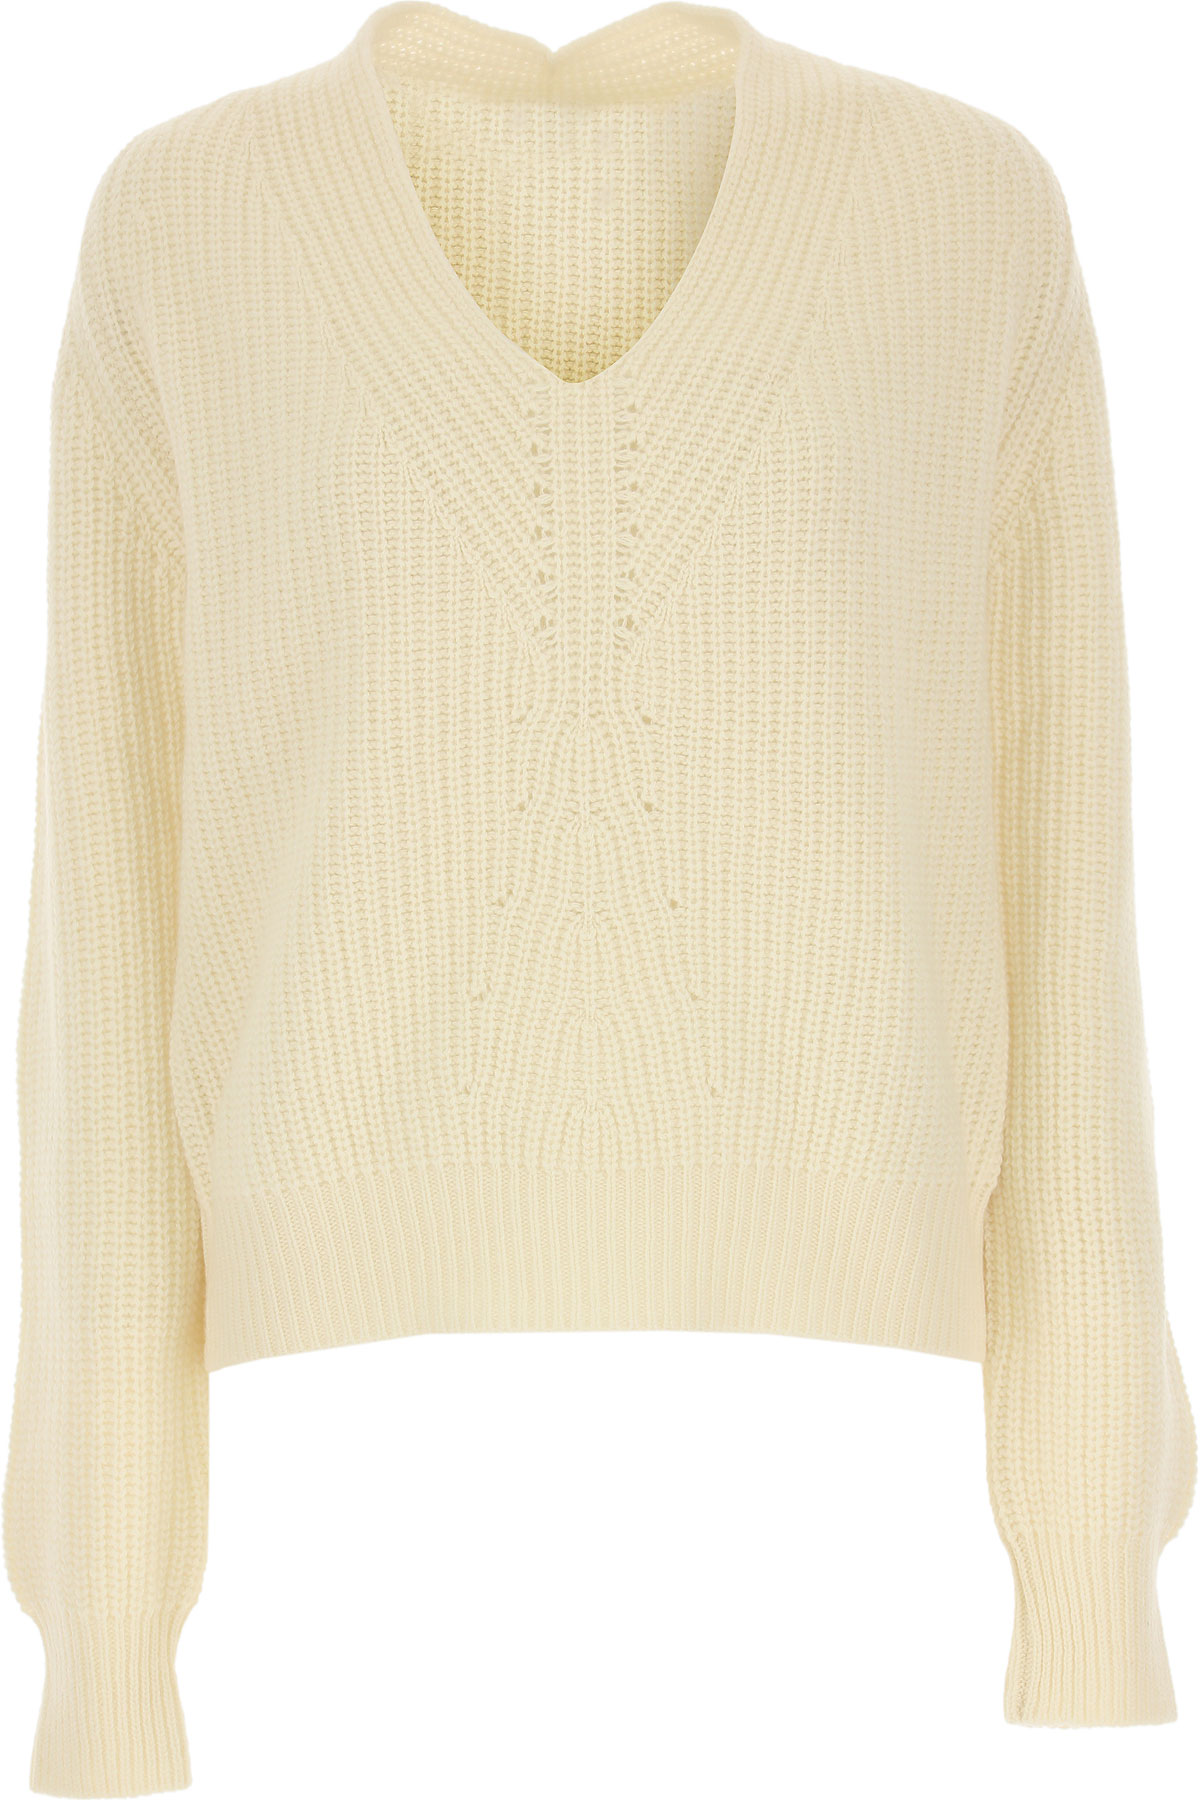 Forte Forte Sweater for Women Jumper On Sale, Ivory, Cashmere, 2019, 1 - S - IT 40 2 - M - IT 42